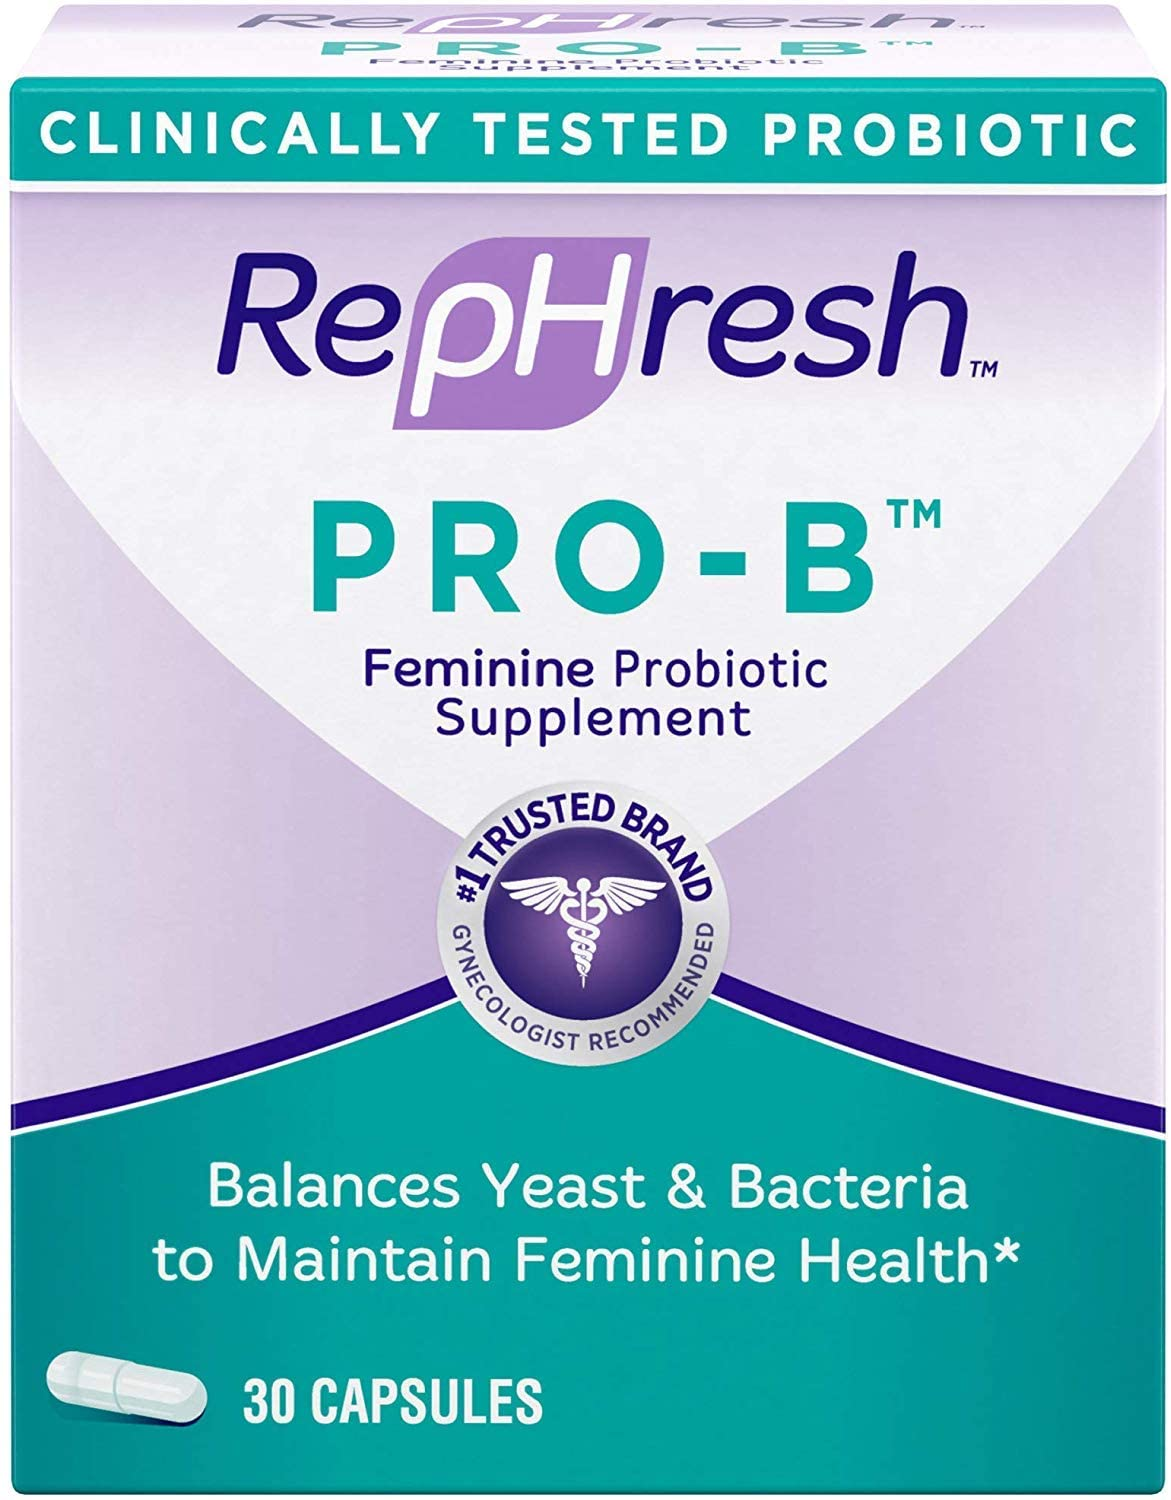 RepHresh Pro B Probiotic Supplement